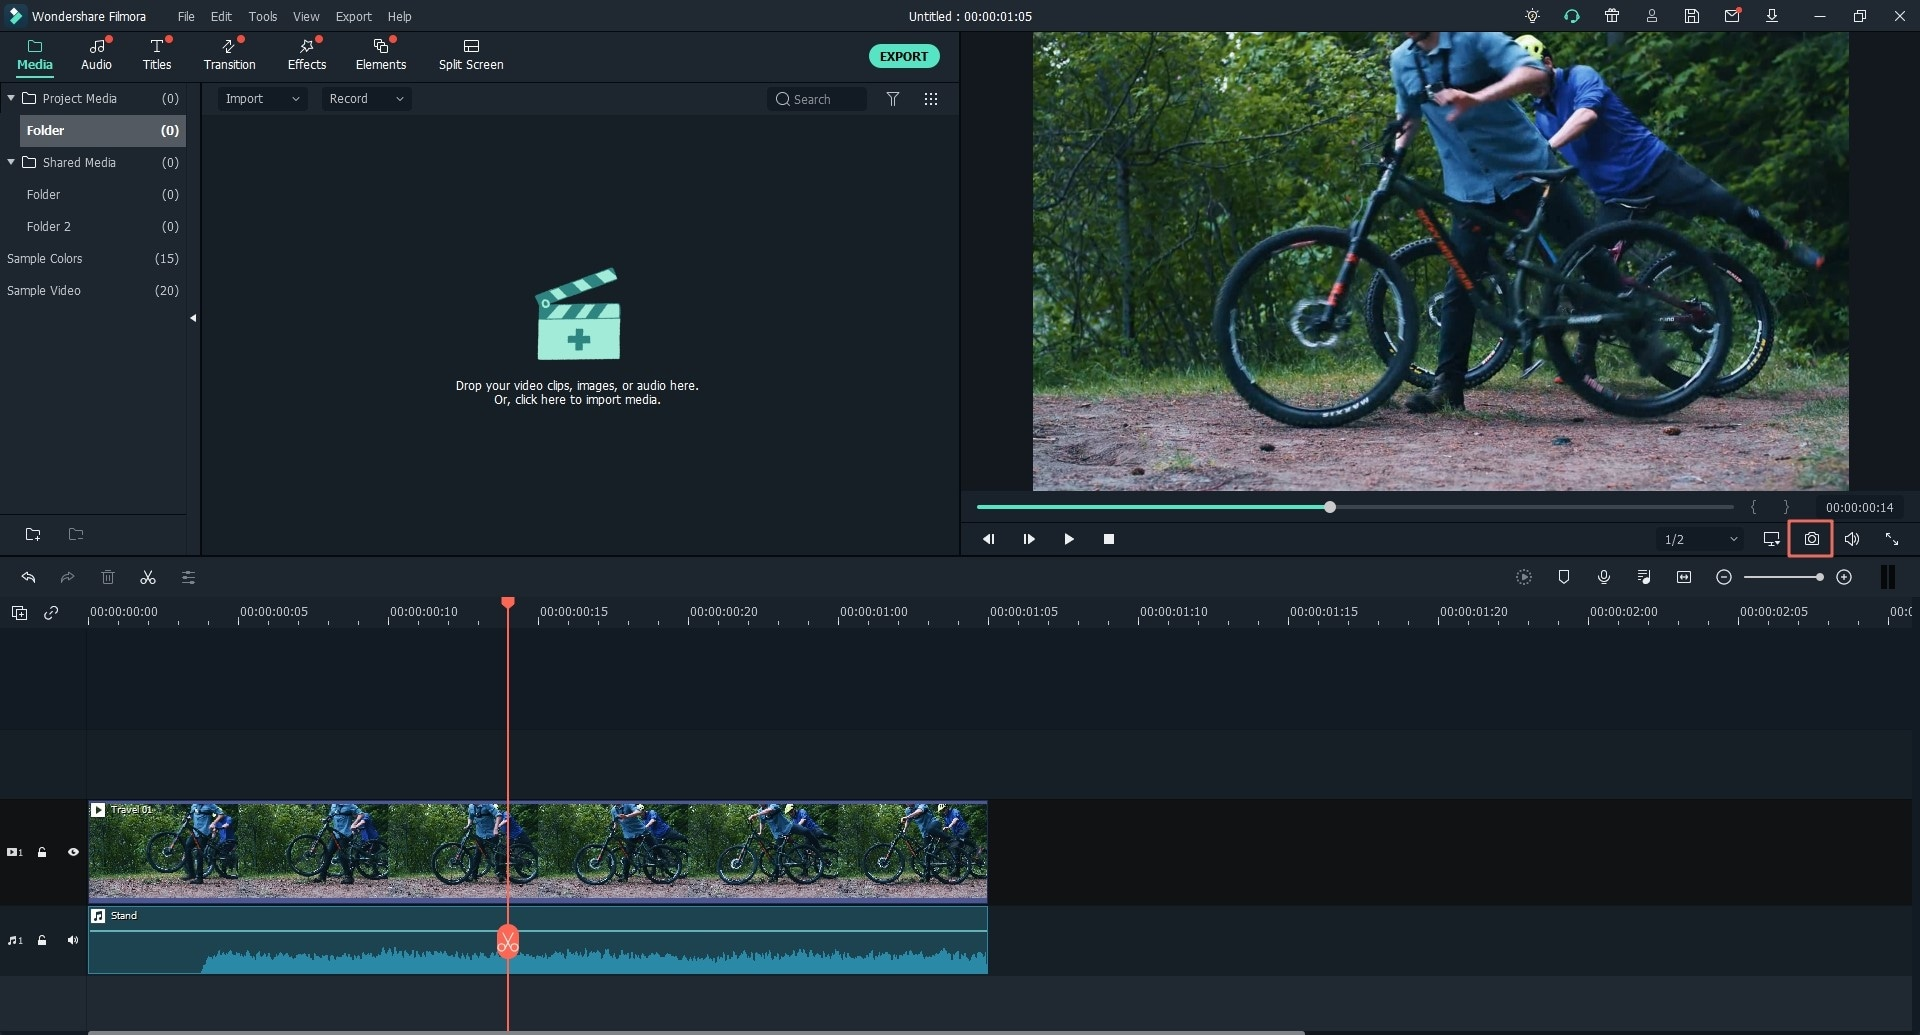 Freeze a Frame in Filmora Video Editor